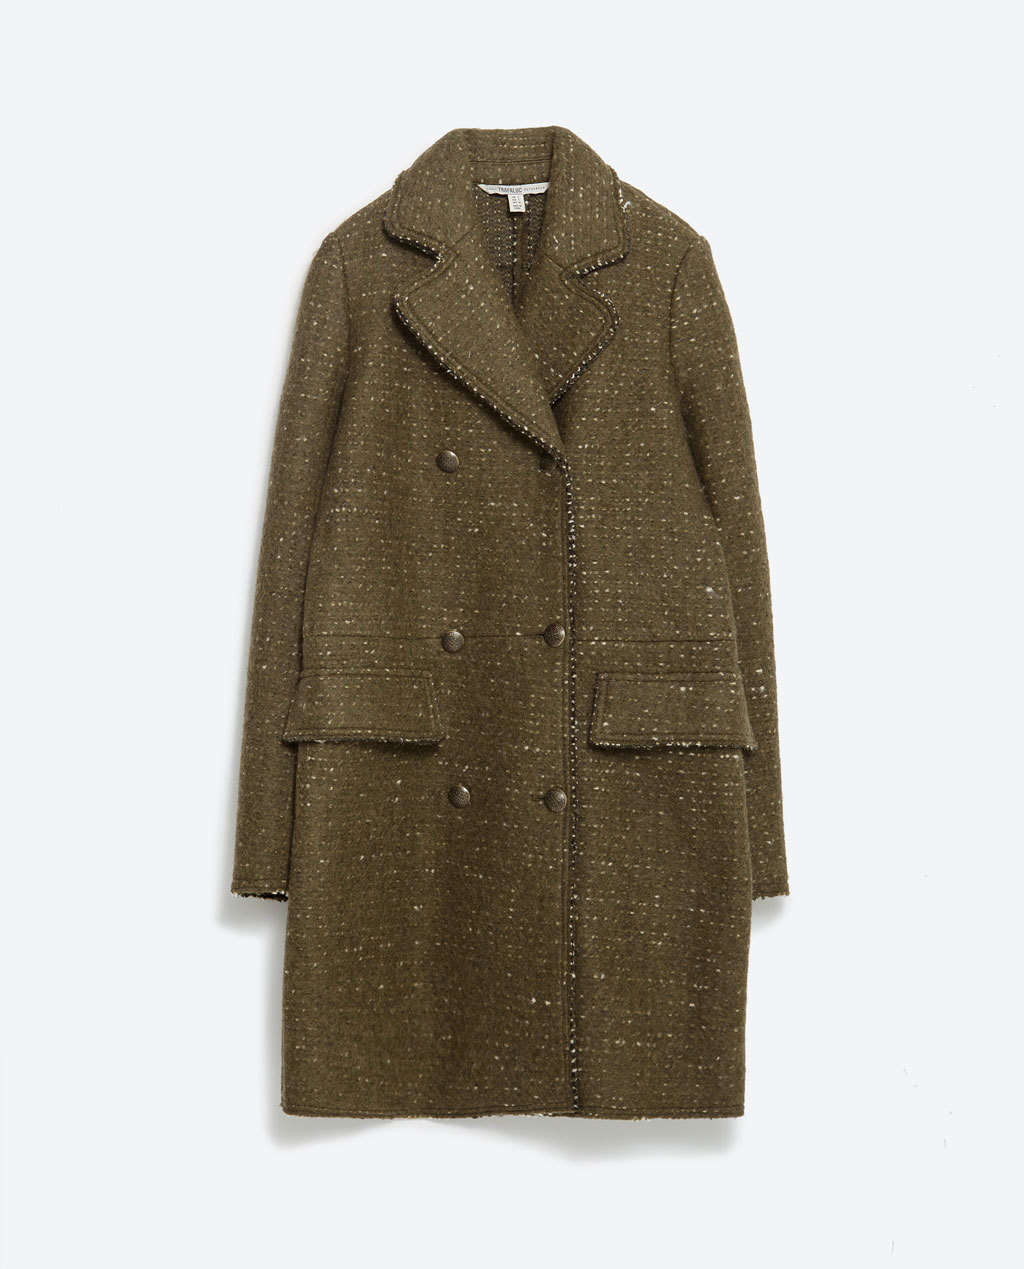 Fabric Coat - pattern: plain; style: double breasted; collar: standard lapel/rever collar; length: mid thigh; predominant colour: khaki; occasions: casual, creative work; fit: straight cut (boxy); fibres: wool - mix; sleeve length: long sleeve; sleeve style: standard; collar break: medium; pattern type: fabric; texture group: woven bulky/heavy; season: a/w 2015; wardrobe: basic